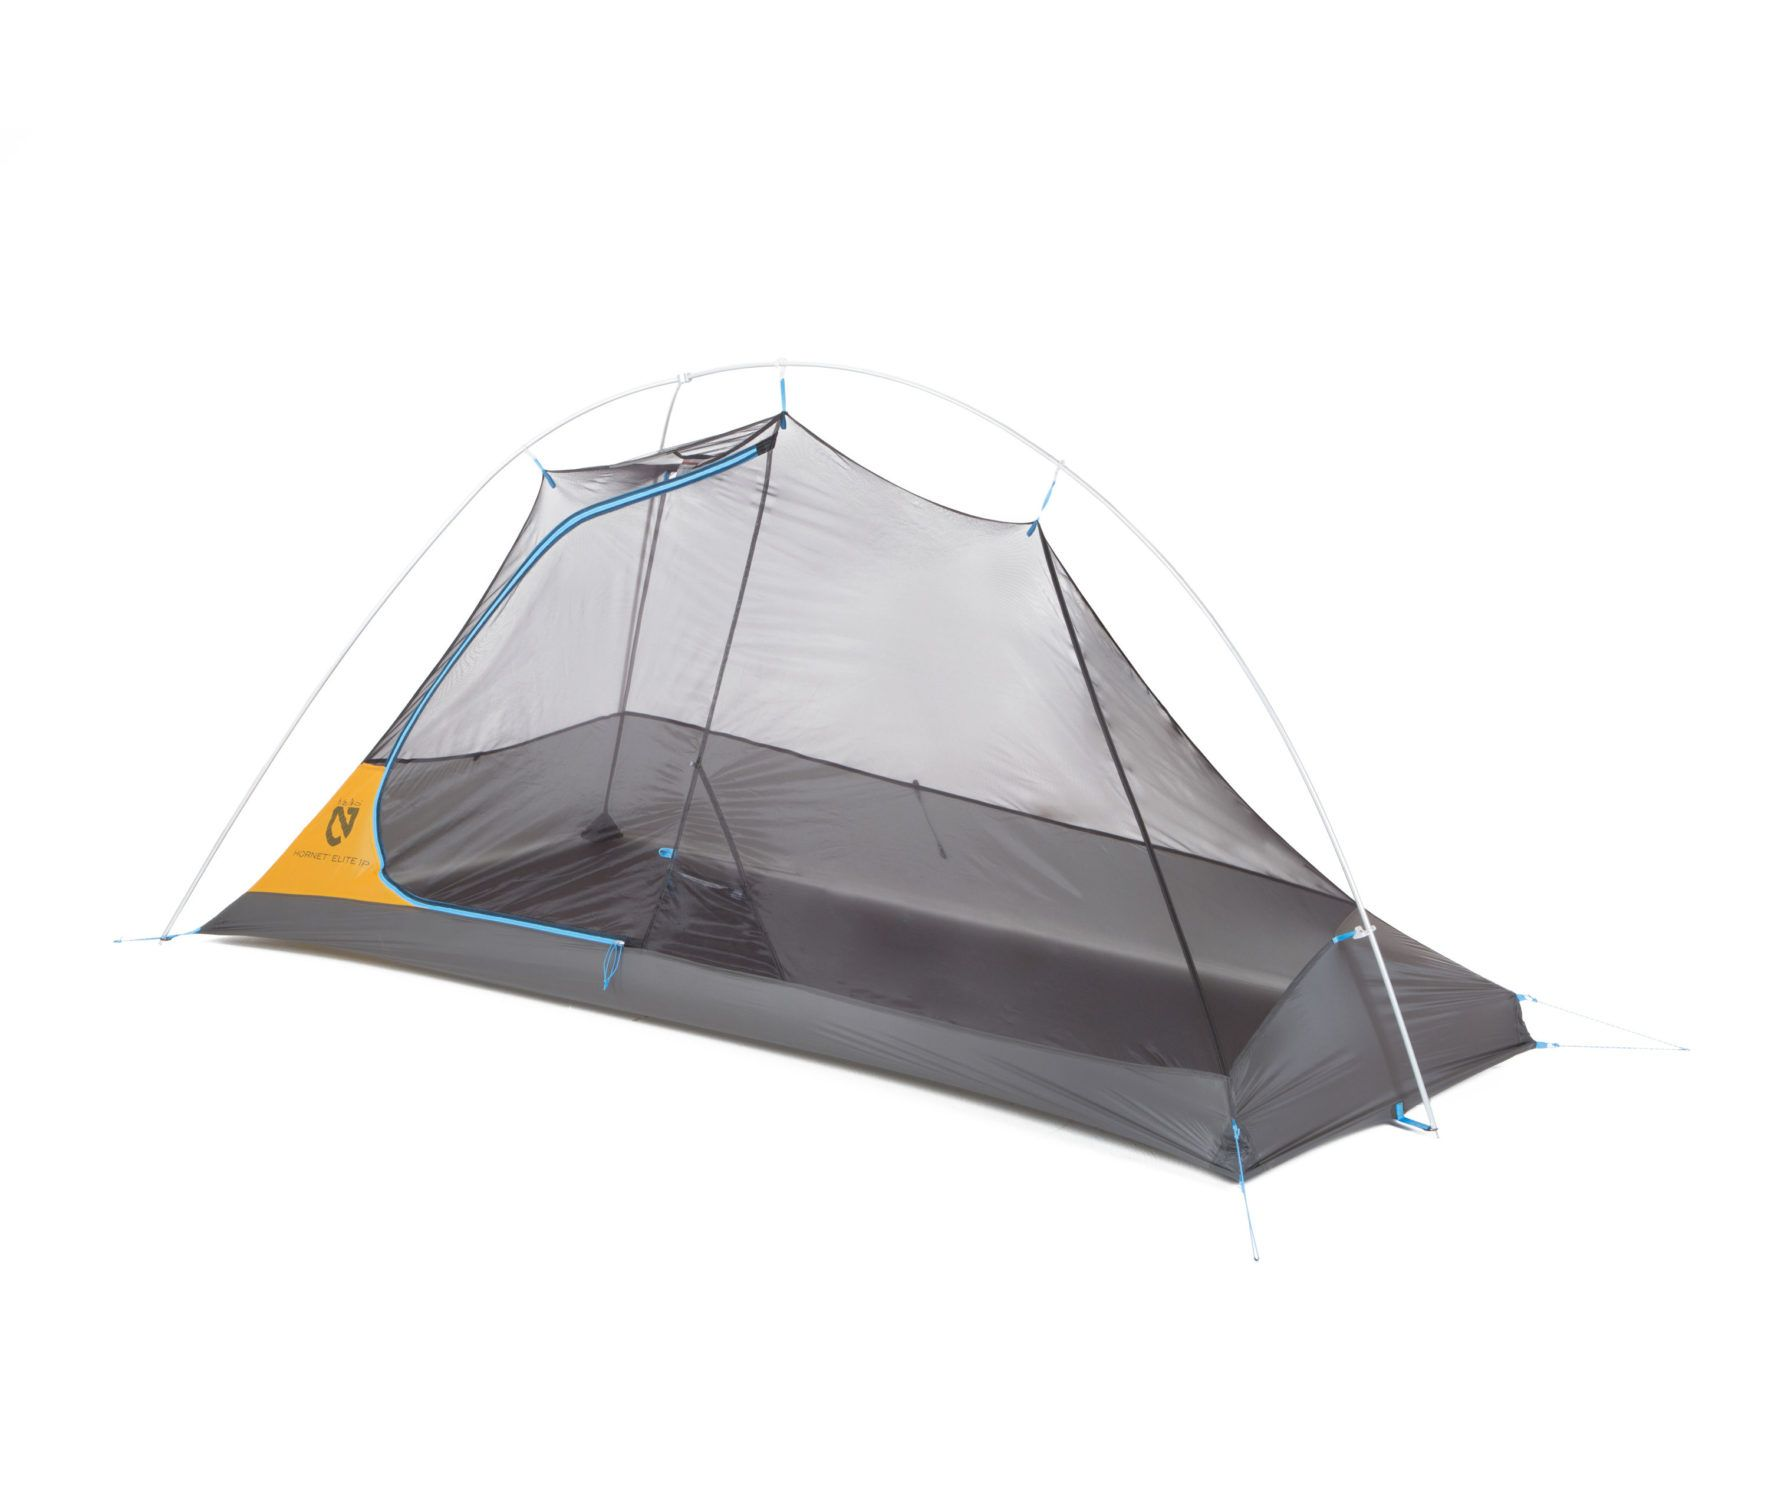 Freestanding Backpacking Tent & The MSR Freelite 2 Tent